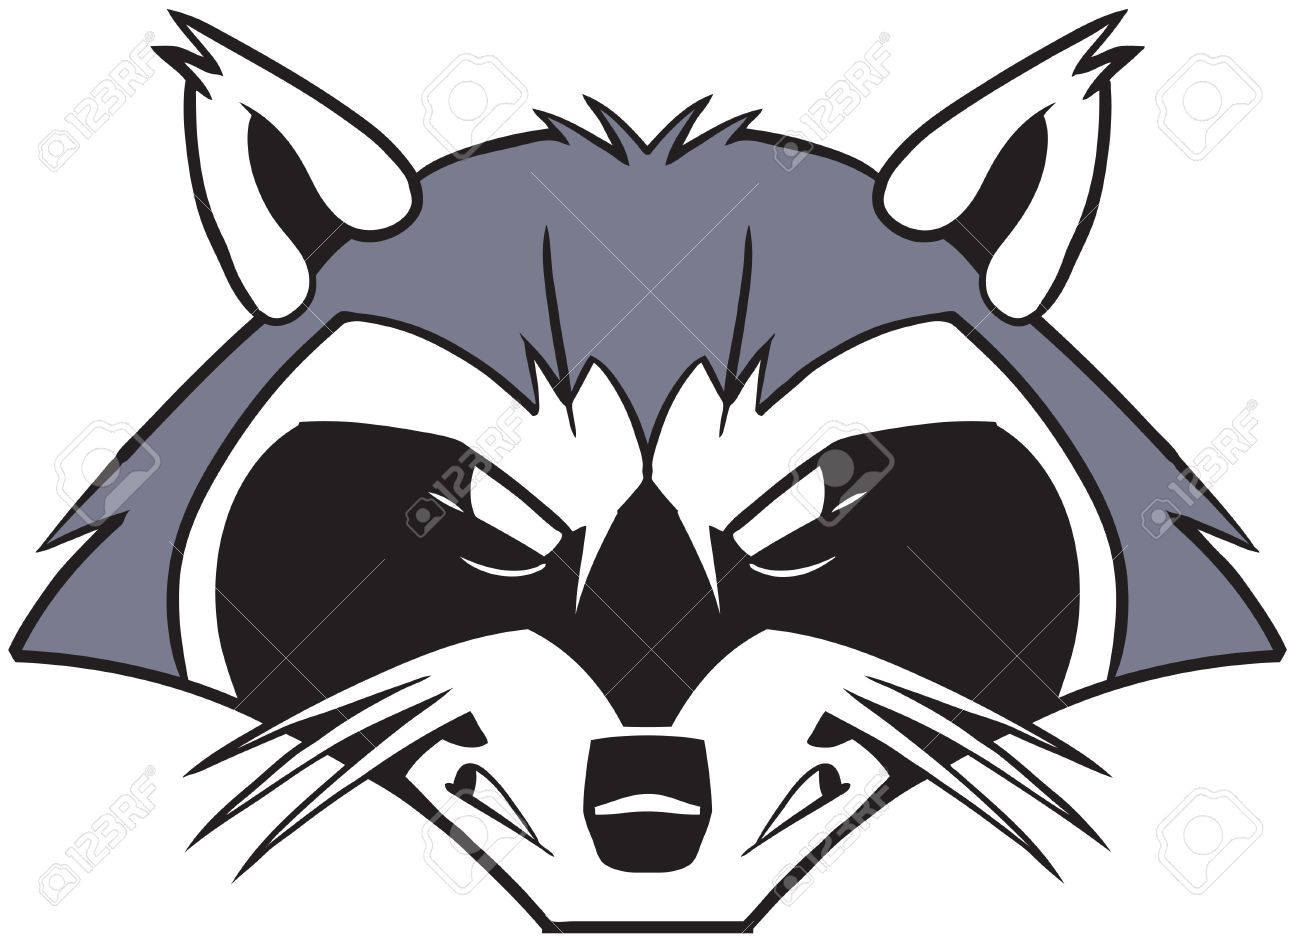 10 719 raccoon cliparts stock vector and royalty free raccoon rh 123rf com raccoon clipart png raccoon clipart black and white